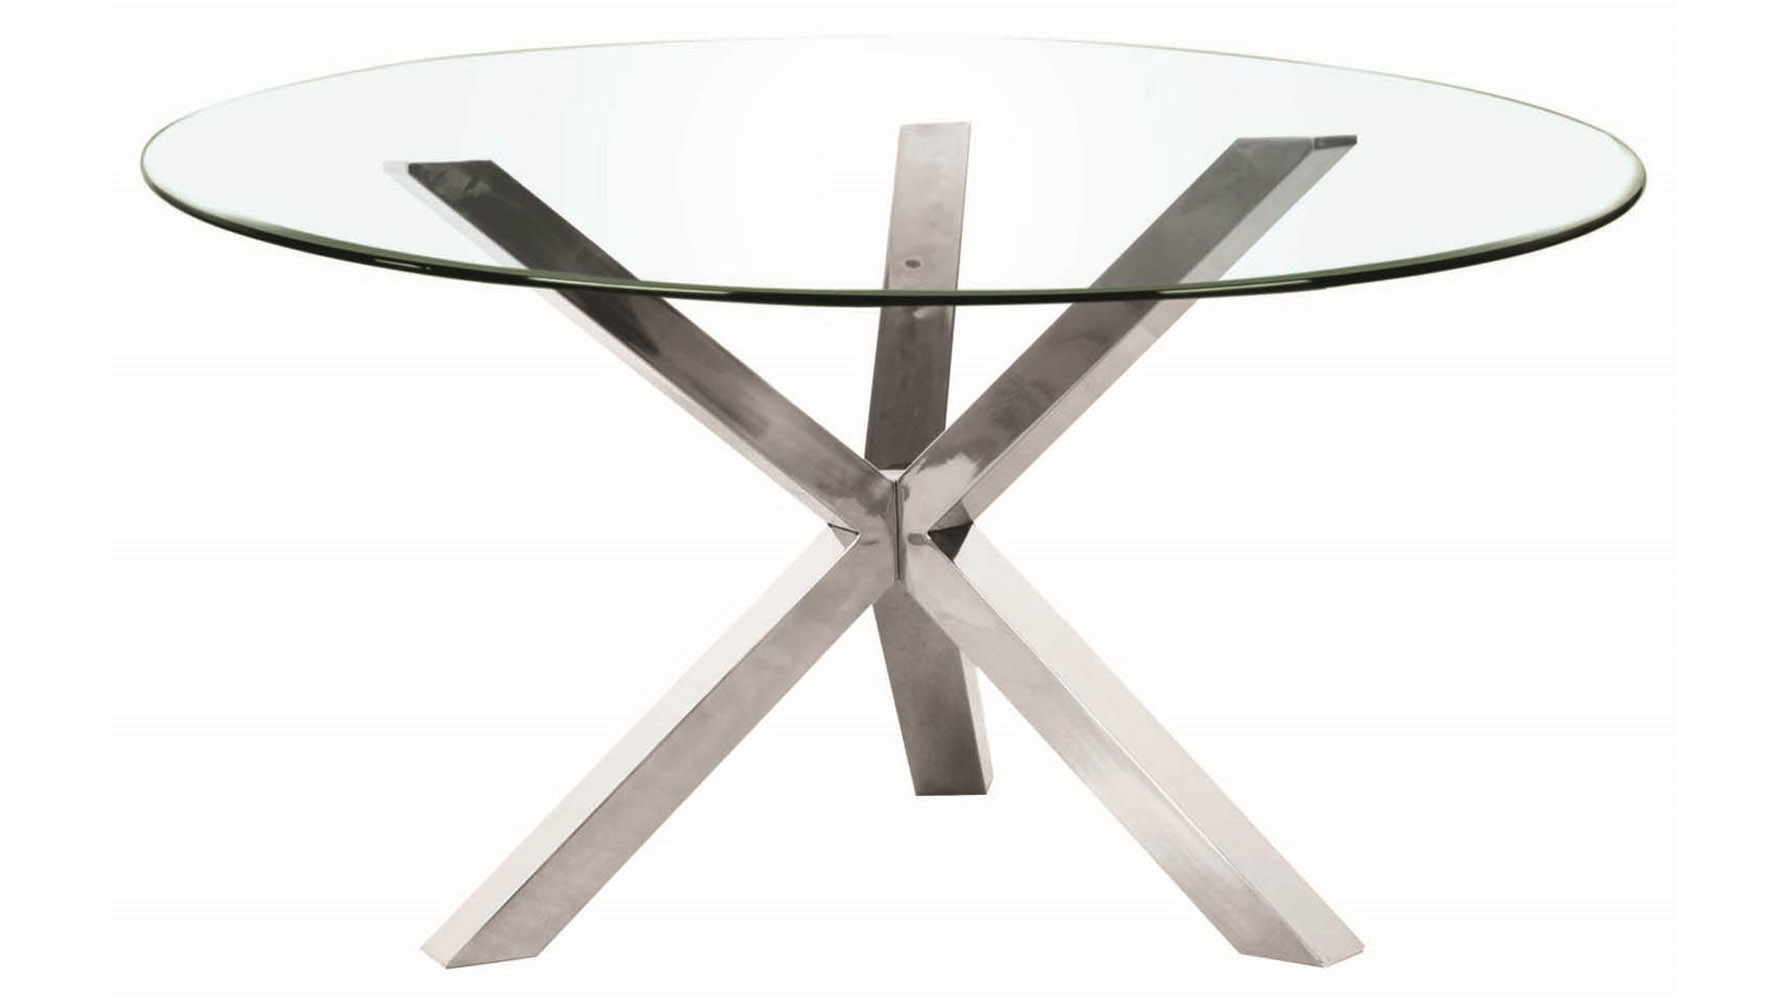 Fixed Dining Tables Modern Dining Tables Dining Room Tables Zuri - 72 inch round conference table